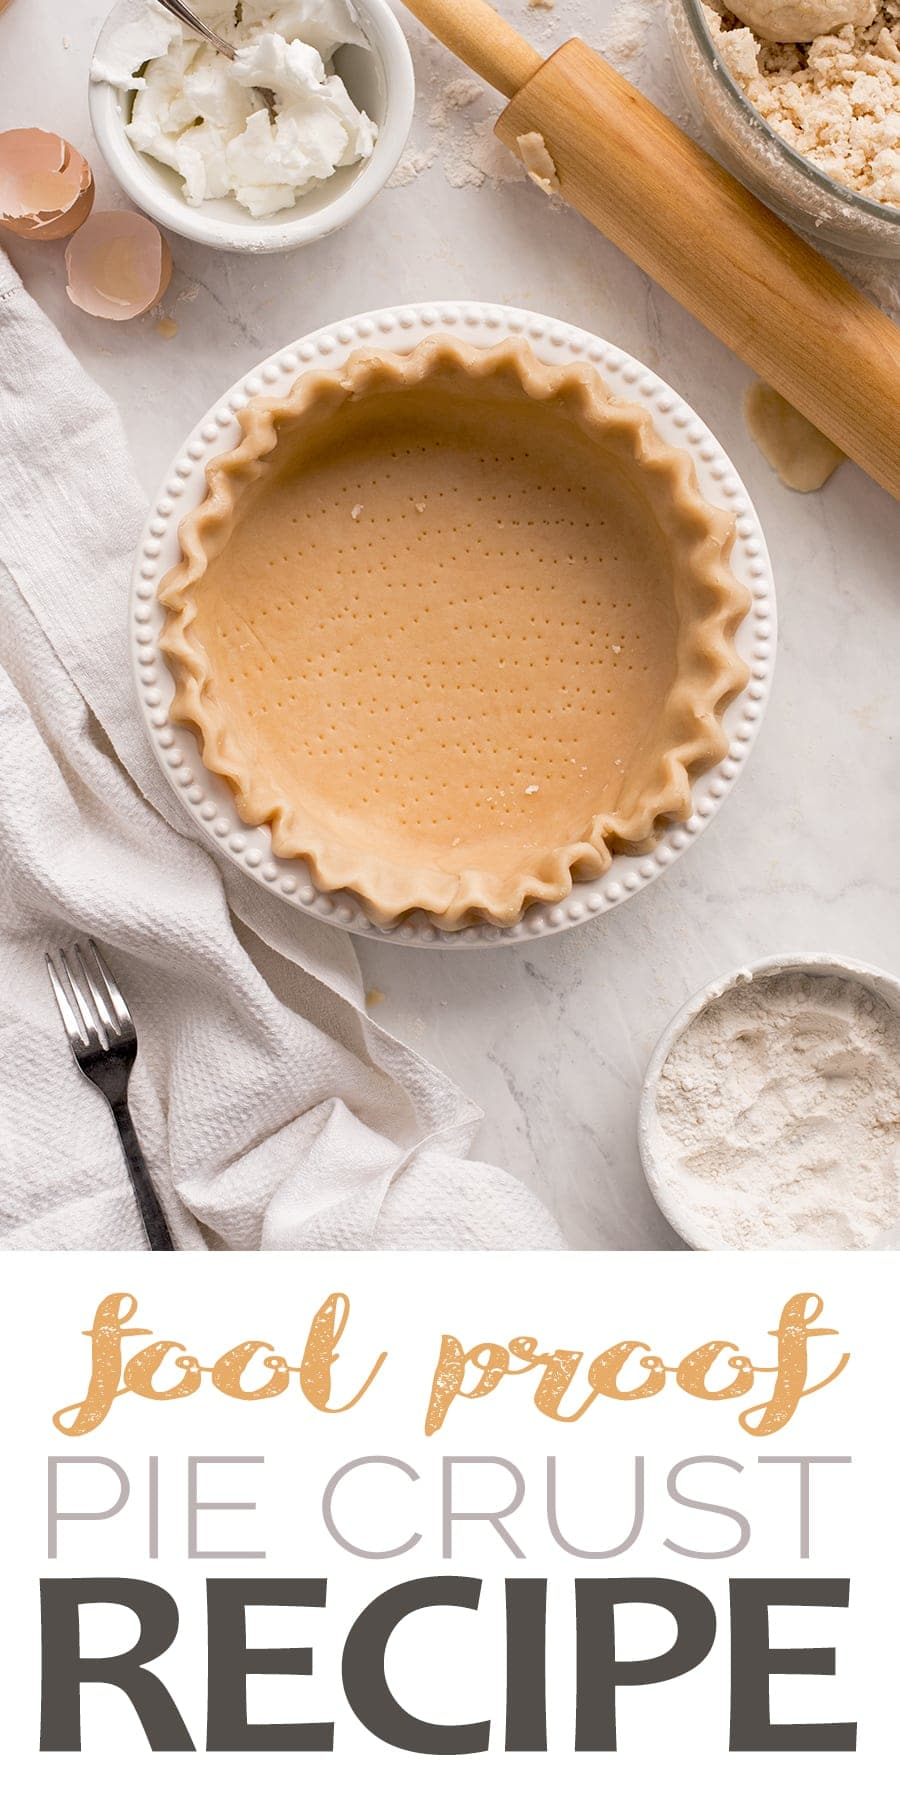 Fool Proof Pie Crust - Foolproof Pie Crust #MyVintageRecipe